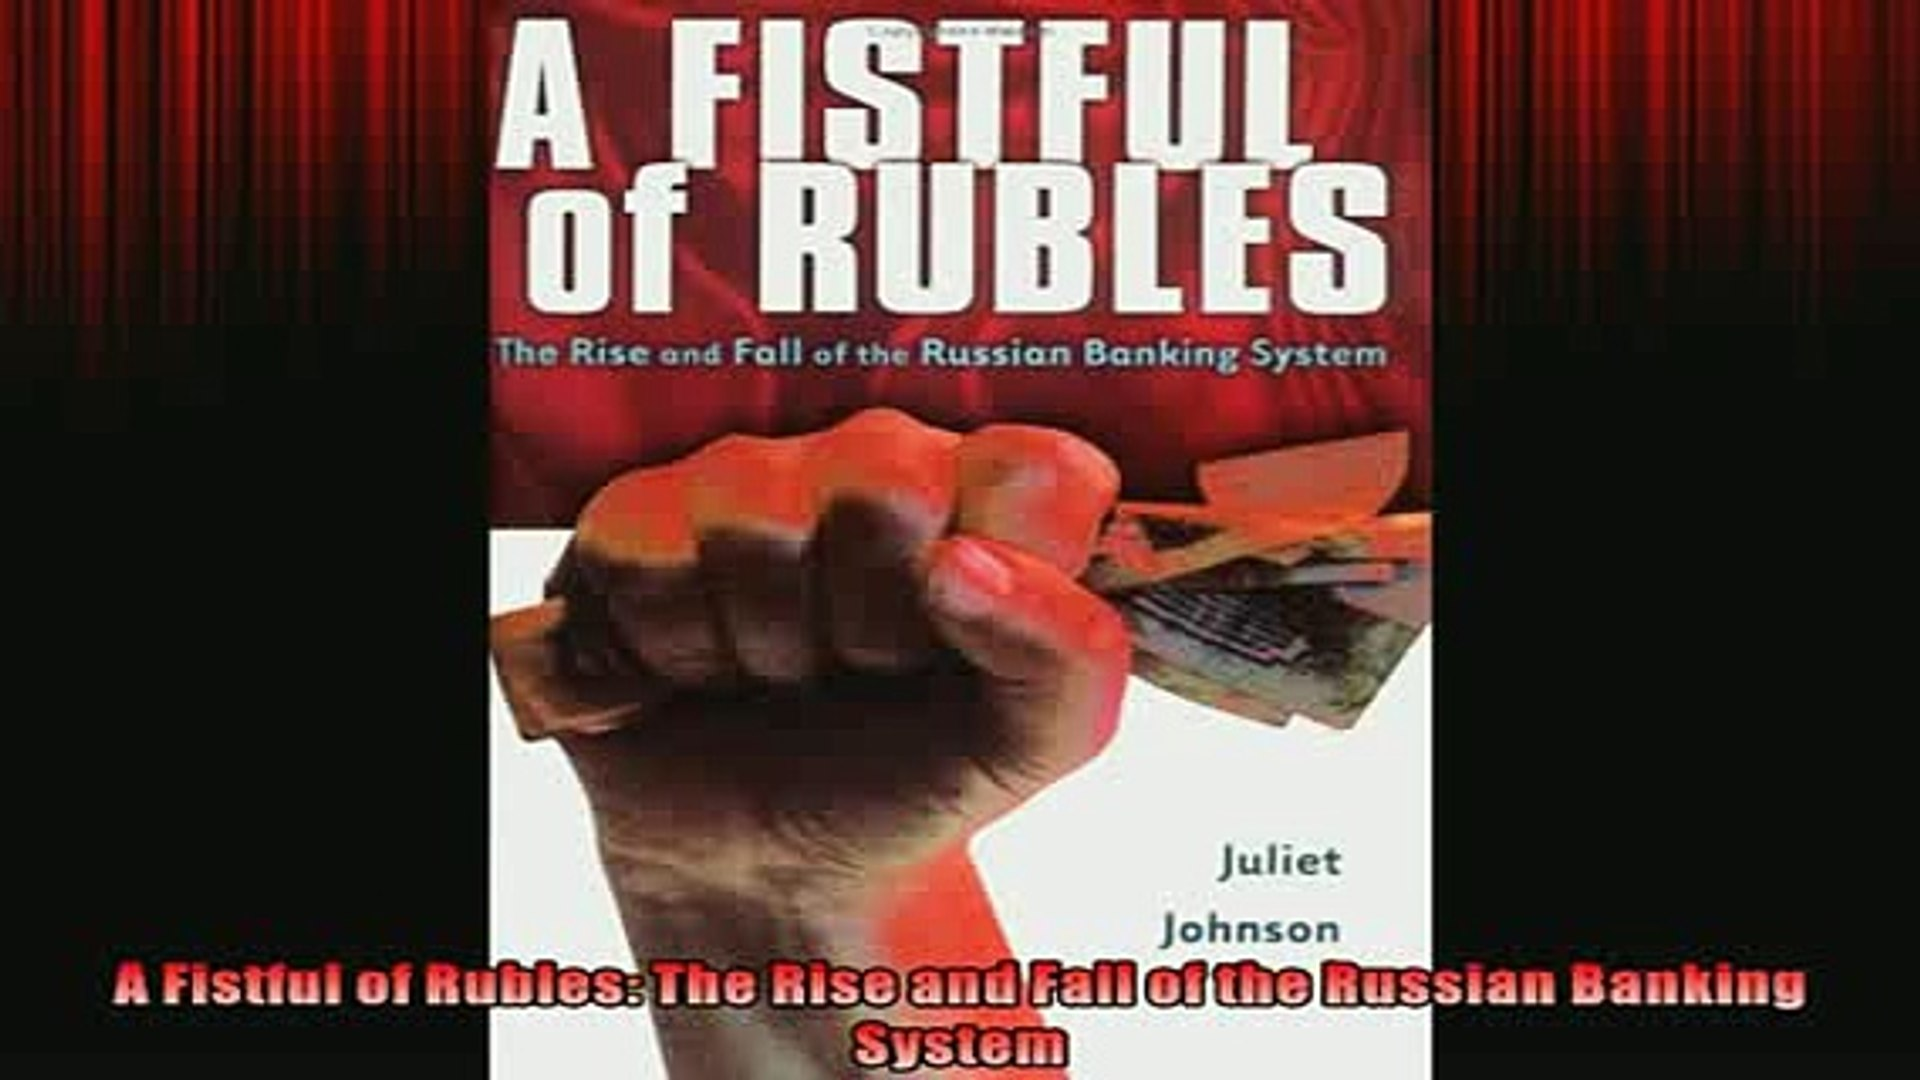 READ PDF DOWNLOAD   A Fistful of Rubles The Rise and Fall of the Russian Banking System  BOOK ONLINE